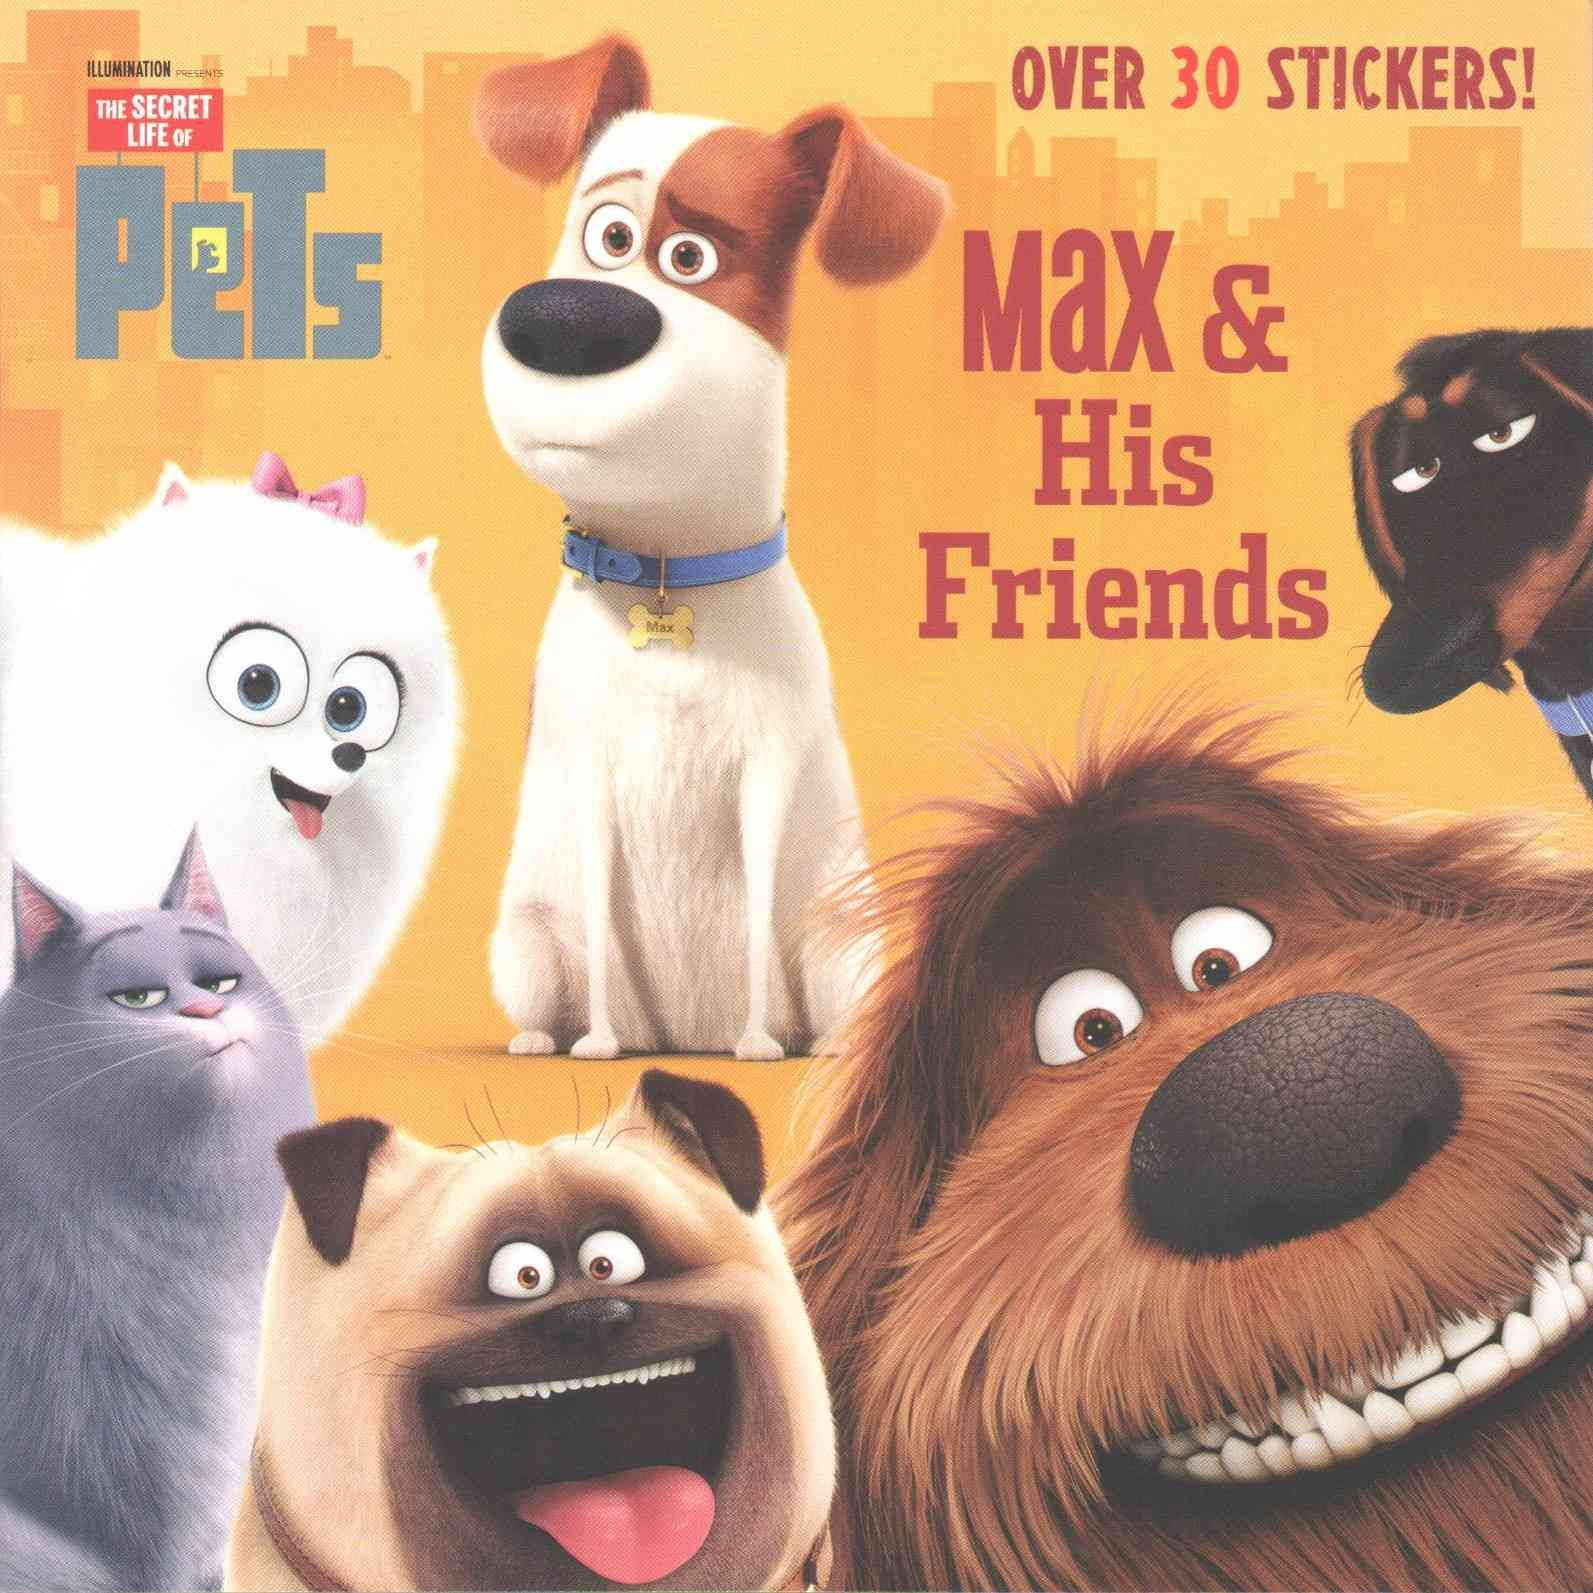 Secret Life Of Pets Pictureback 1 Paperback Overstock Com Shopping The Best Deals On Animals Secret Life Of Pets Secret Life Pets